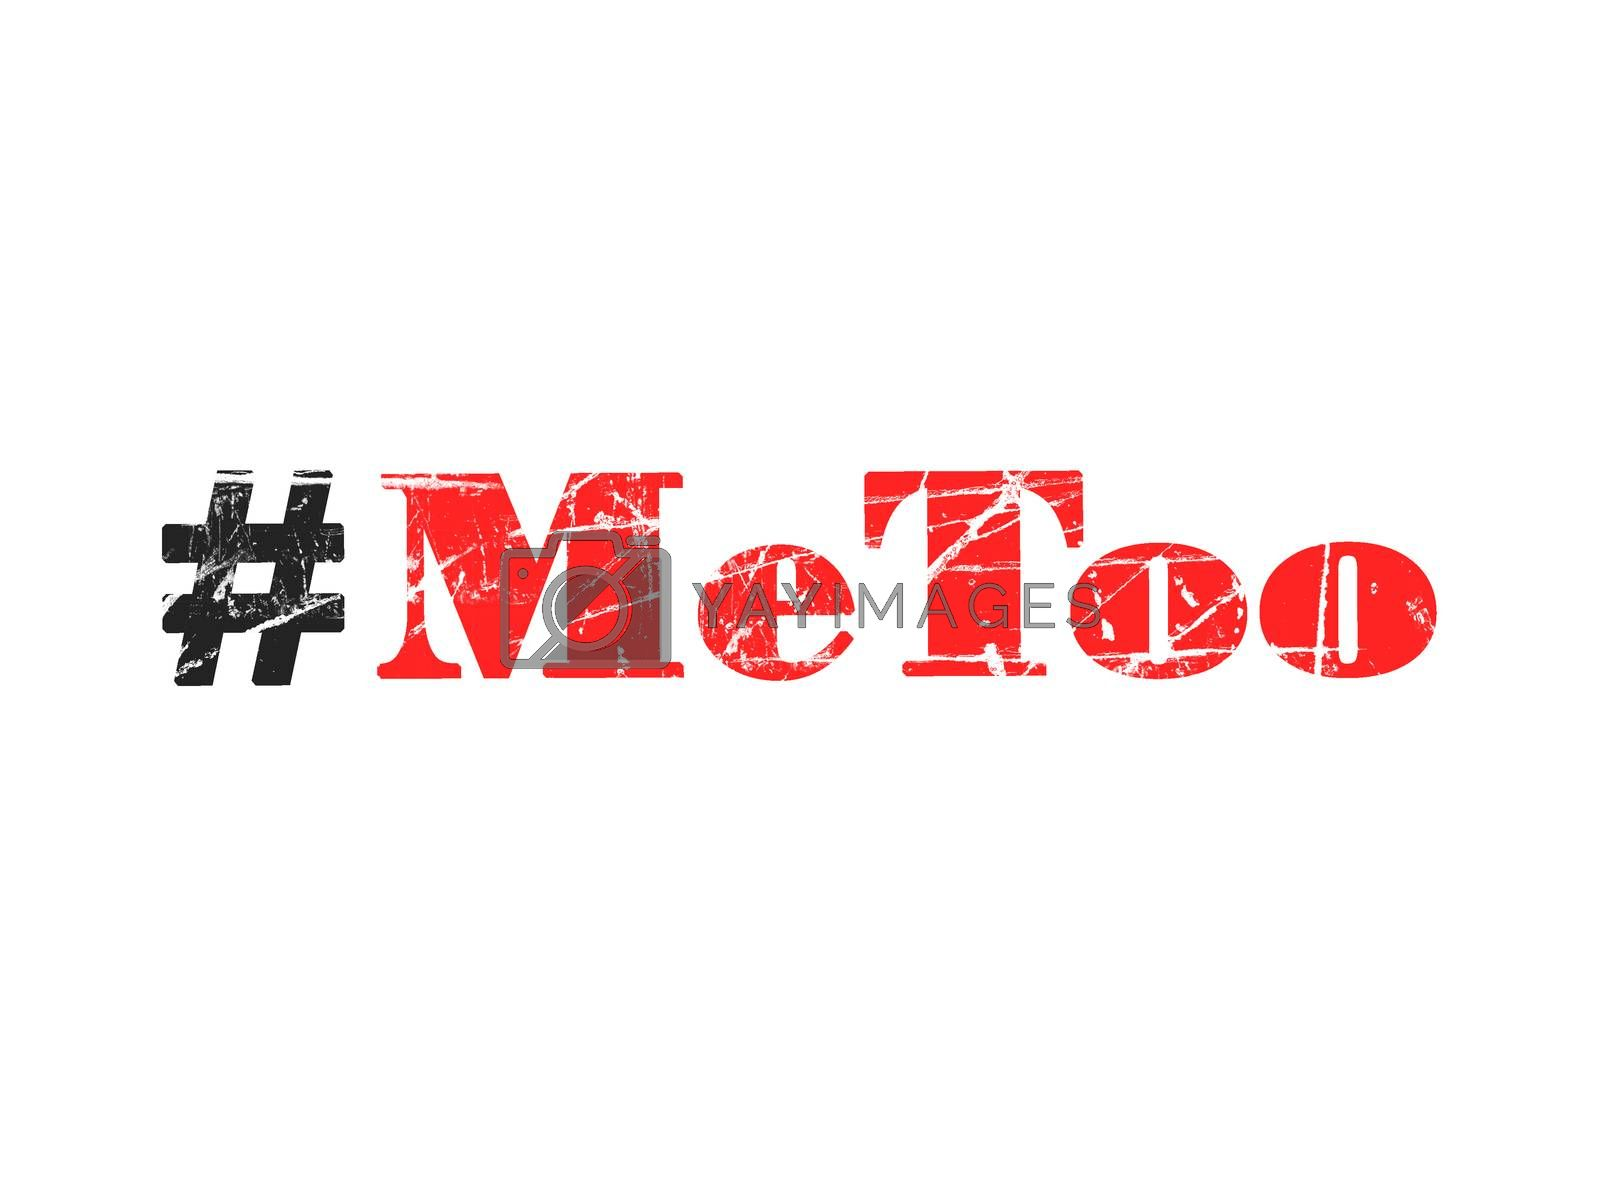 Hashtag Metoo illustration on white background as trending social-media movement against sexual harassment